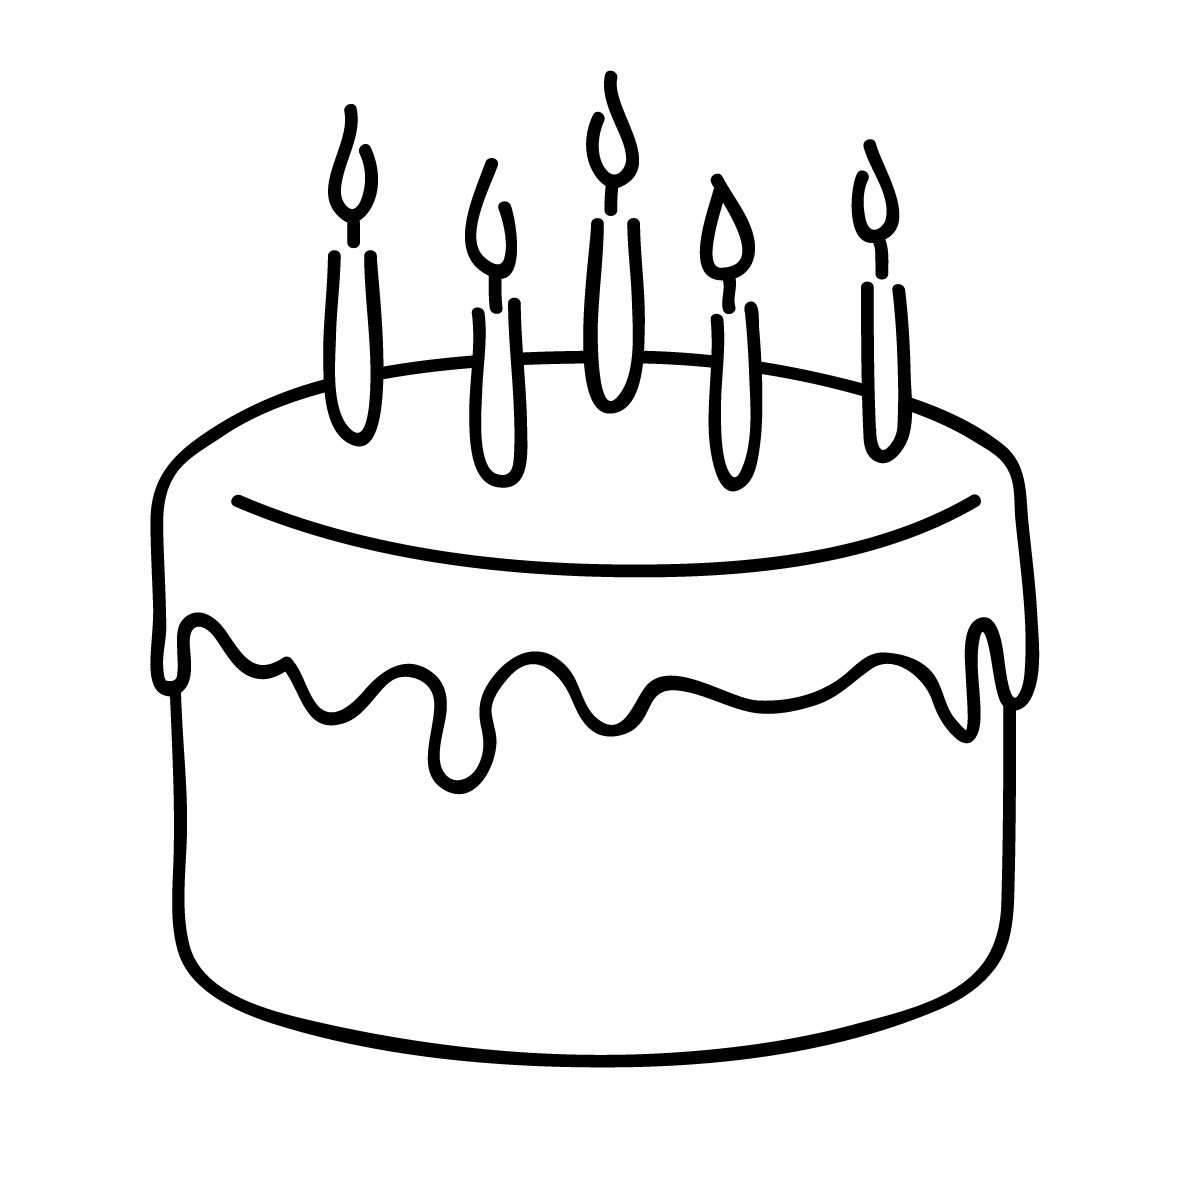 Happy Birthday Coloring Pages For Sister Happy Birthday Coloring Pages For Sister as well HAPPY BIRTHDAY SISTER together with Black And White Happy Birthday Greeting OSBNoGVtz 7C4sMXEHPvhTbEZzQFPMUJem4g rk65YMooGWOIUTRwbS0a1EQsZN4NN5SVWSA6a 7CmBCjkF8UbbL 7Cw in addition Happy 50th Birthday Wishes Quotes moreover 3 Generation Family Tree Template With Siblings. on birthday greetings for sister